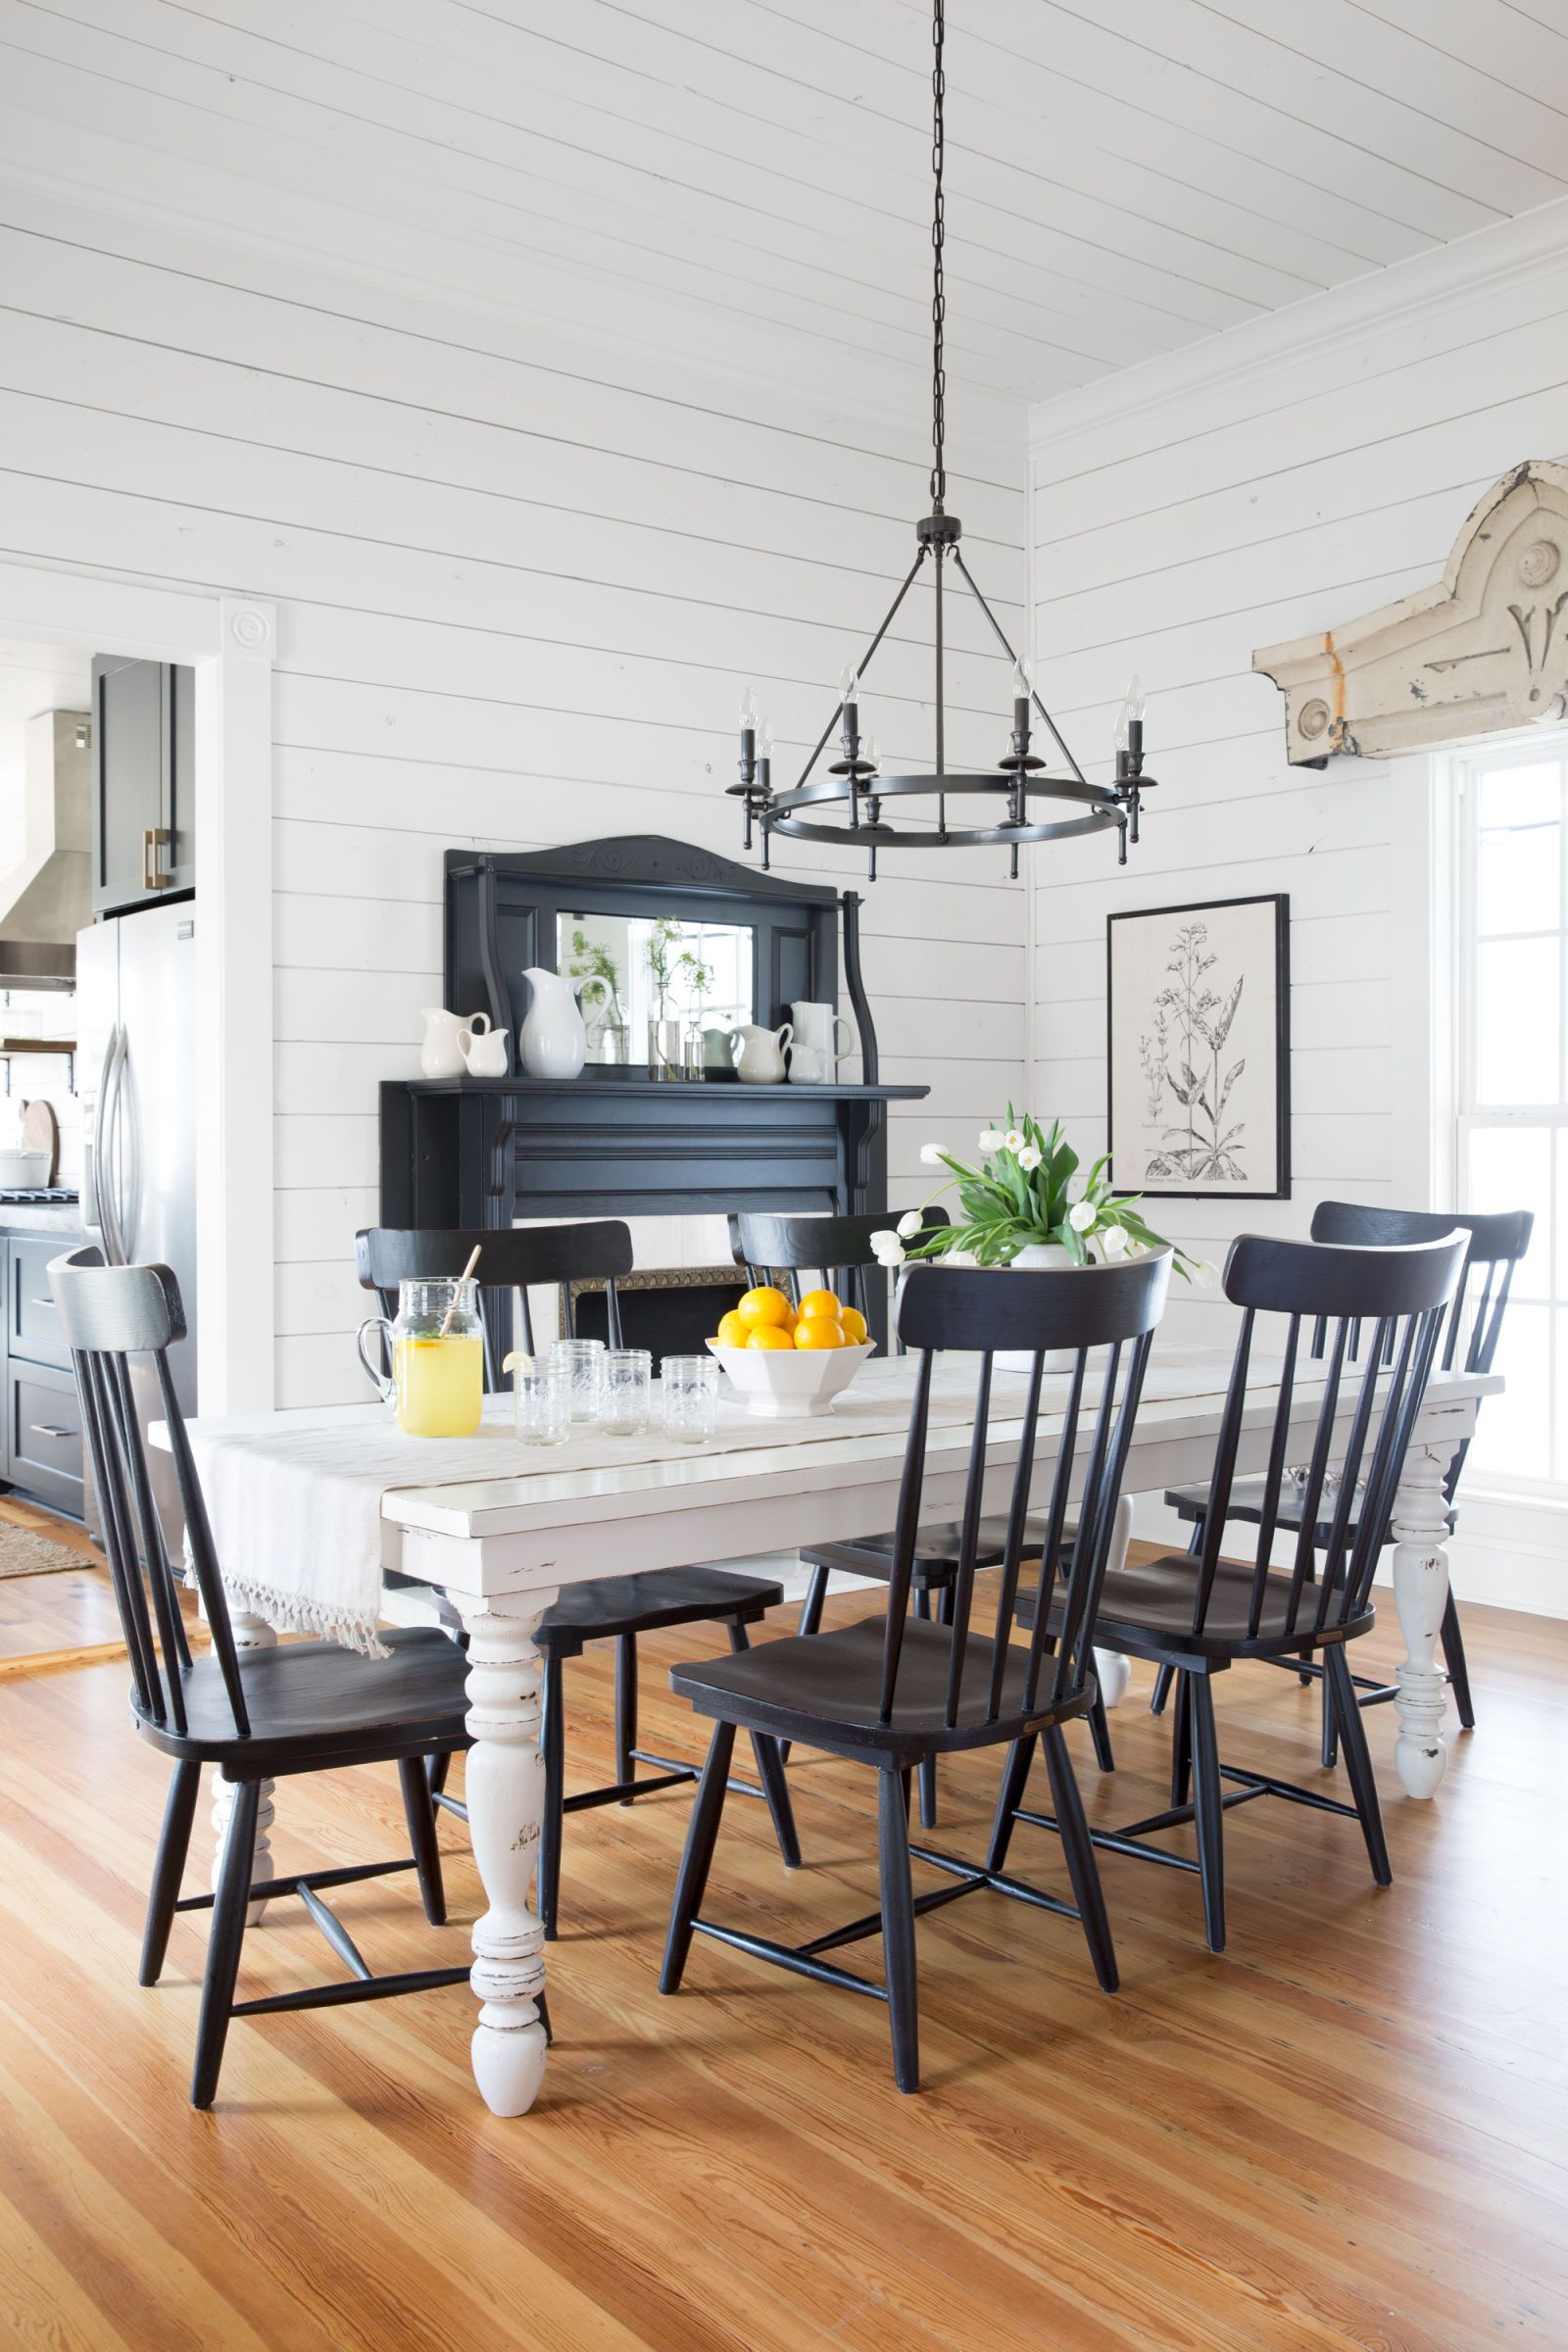 Take a Tour of Chip and Joanna Gaines' Magnolia House B&B